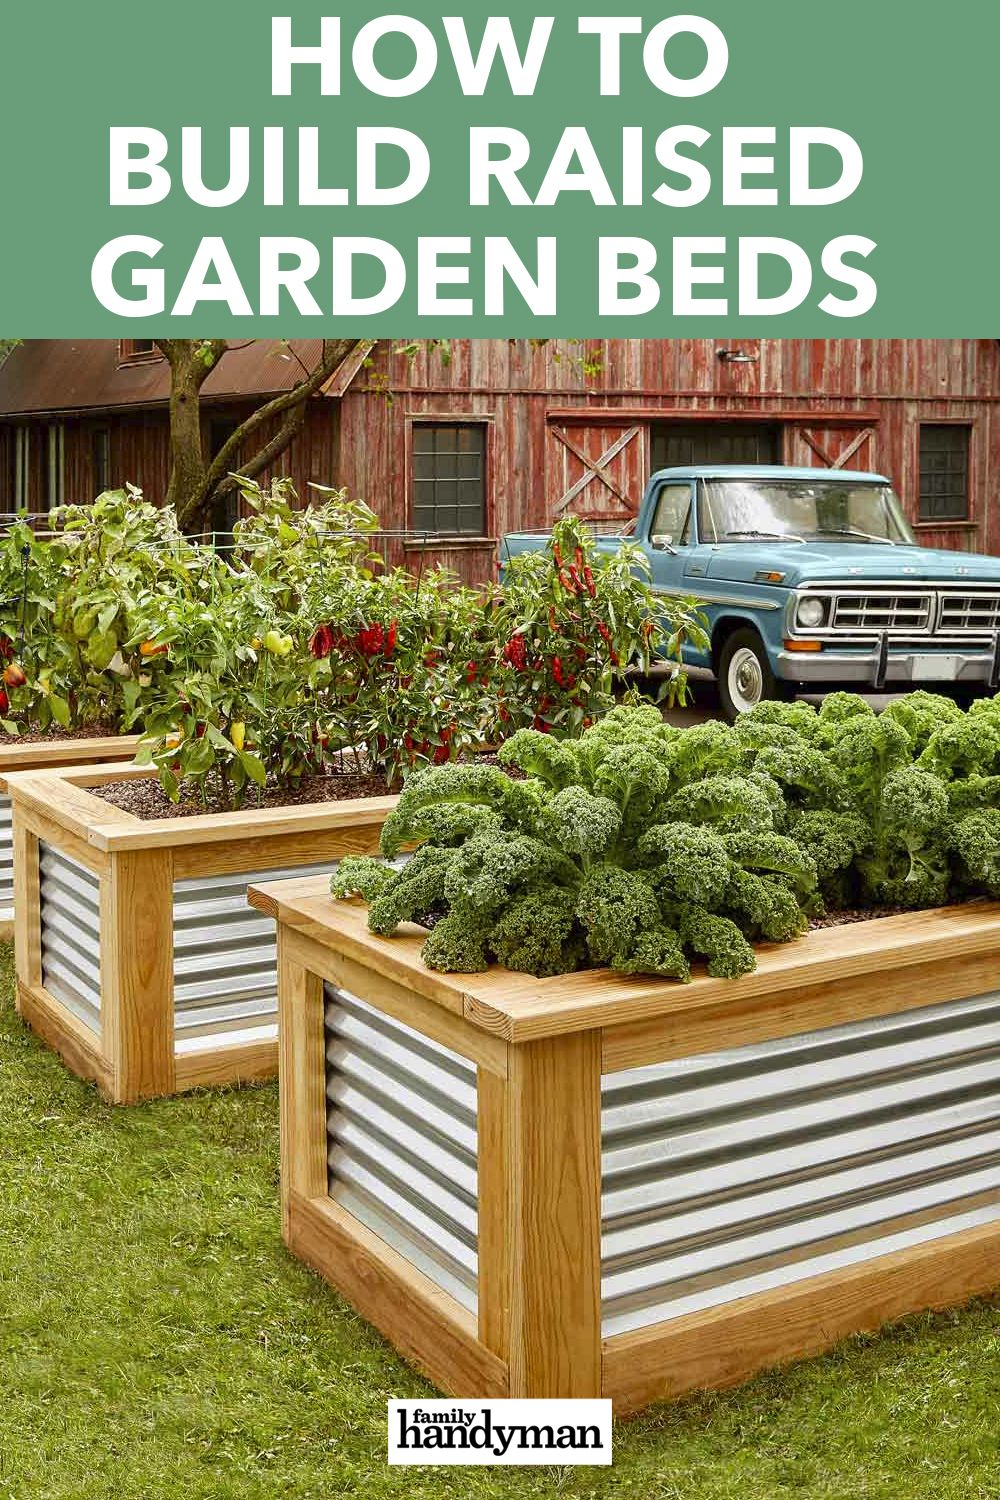 How to Build Raised Garden Beds is part of Building raised garden beds, Garden beds, Raised garden beds diy, Building a raised garden, Raised garden beds, Raised garden - If you've always liked the look of raised garden boxes, now is your chance to finally get out and build them  They provide a rich aesthetic to your yard and ease and convenience when gardening